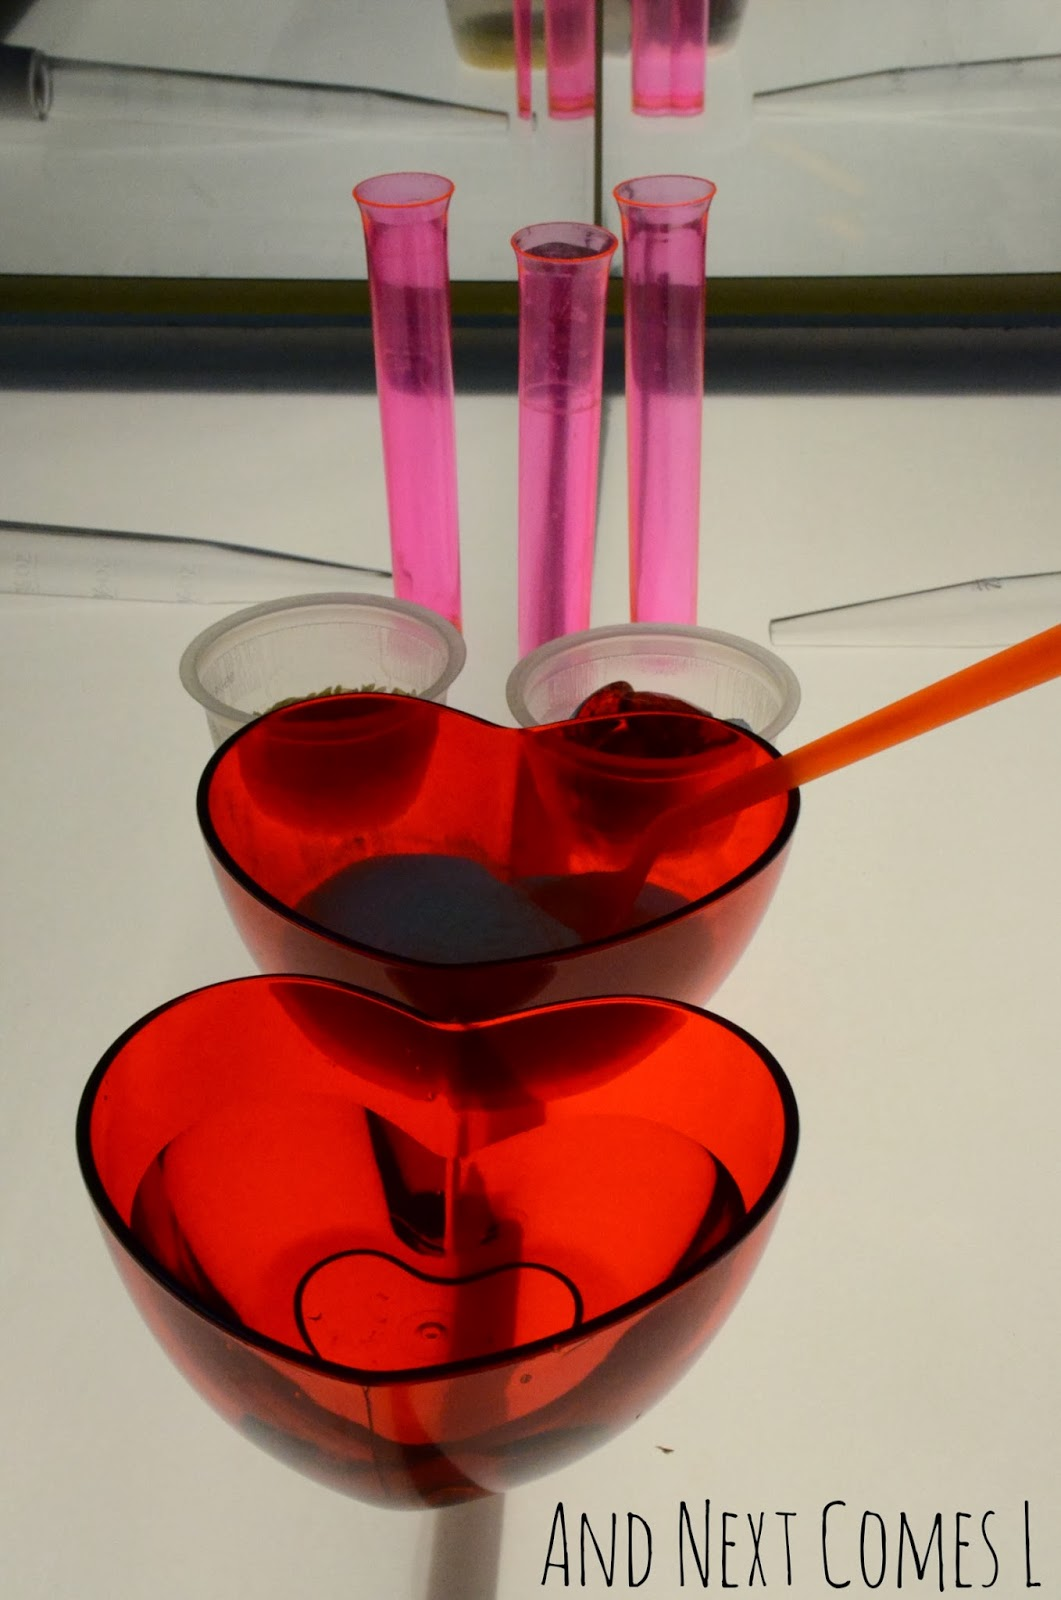 Invitation to create love potions on the light table - a simple Valentine's science activity for kids from And Next Comes L